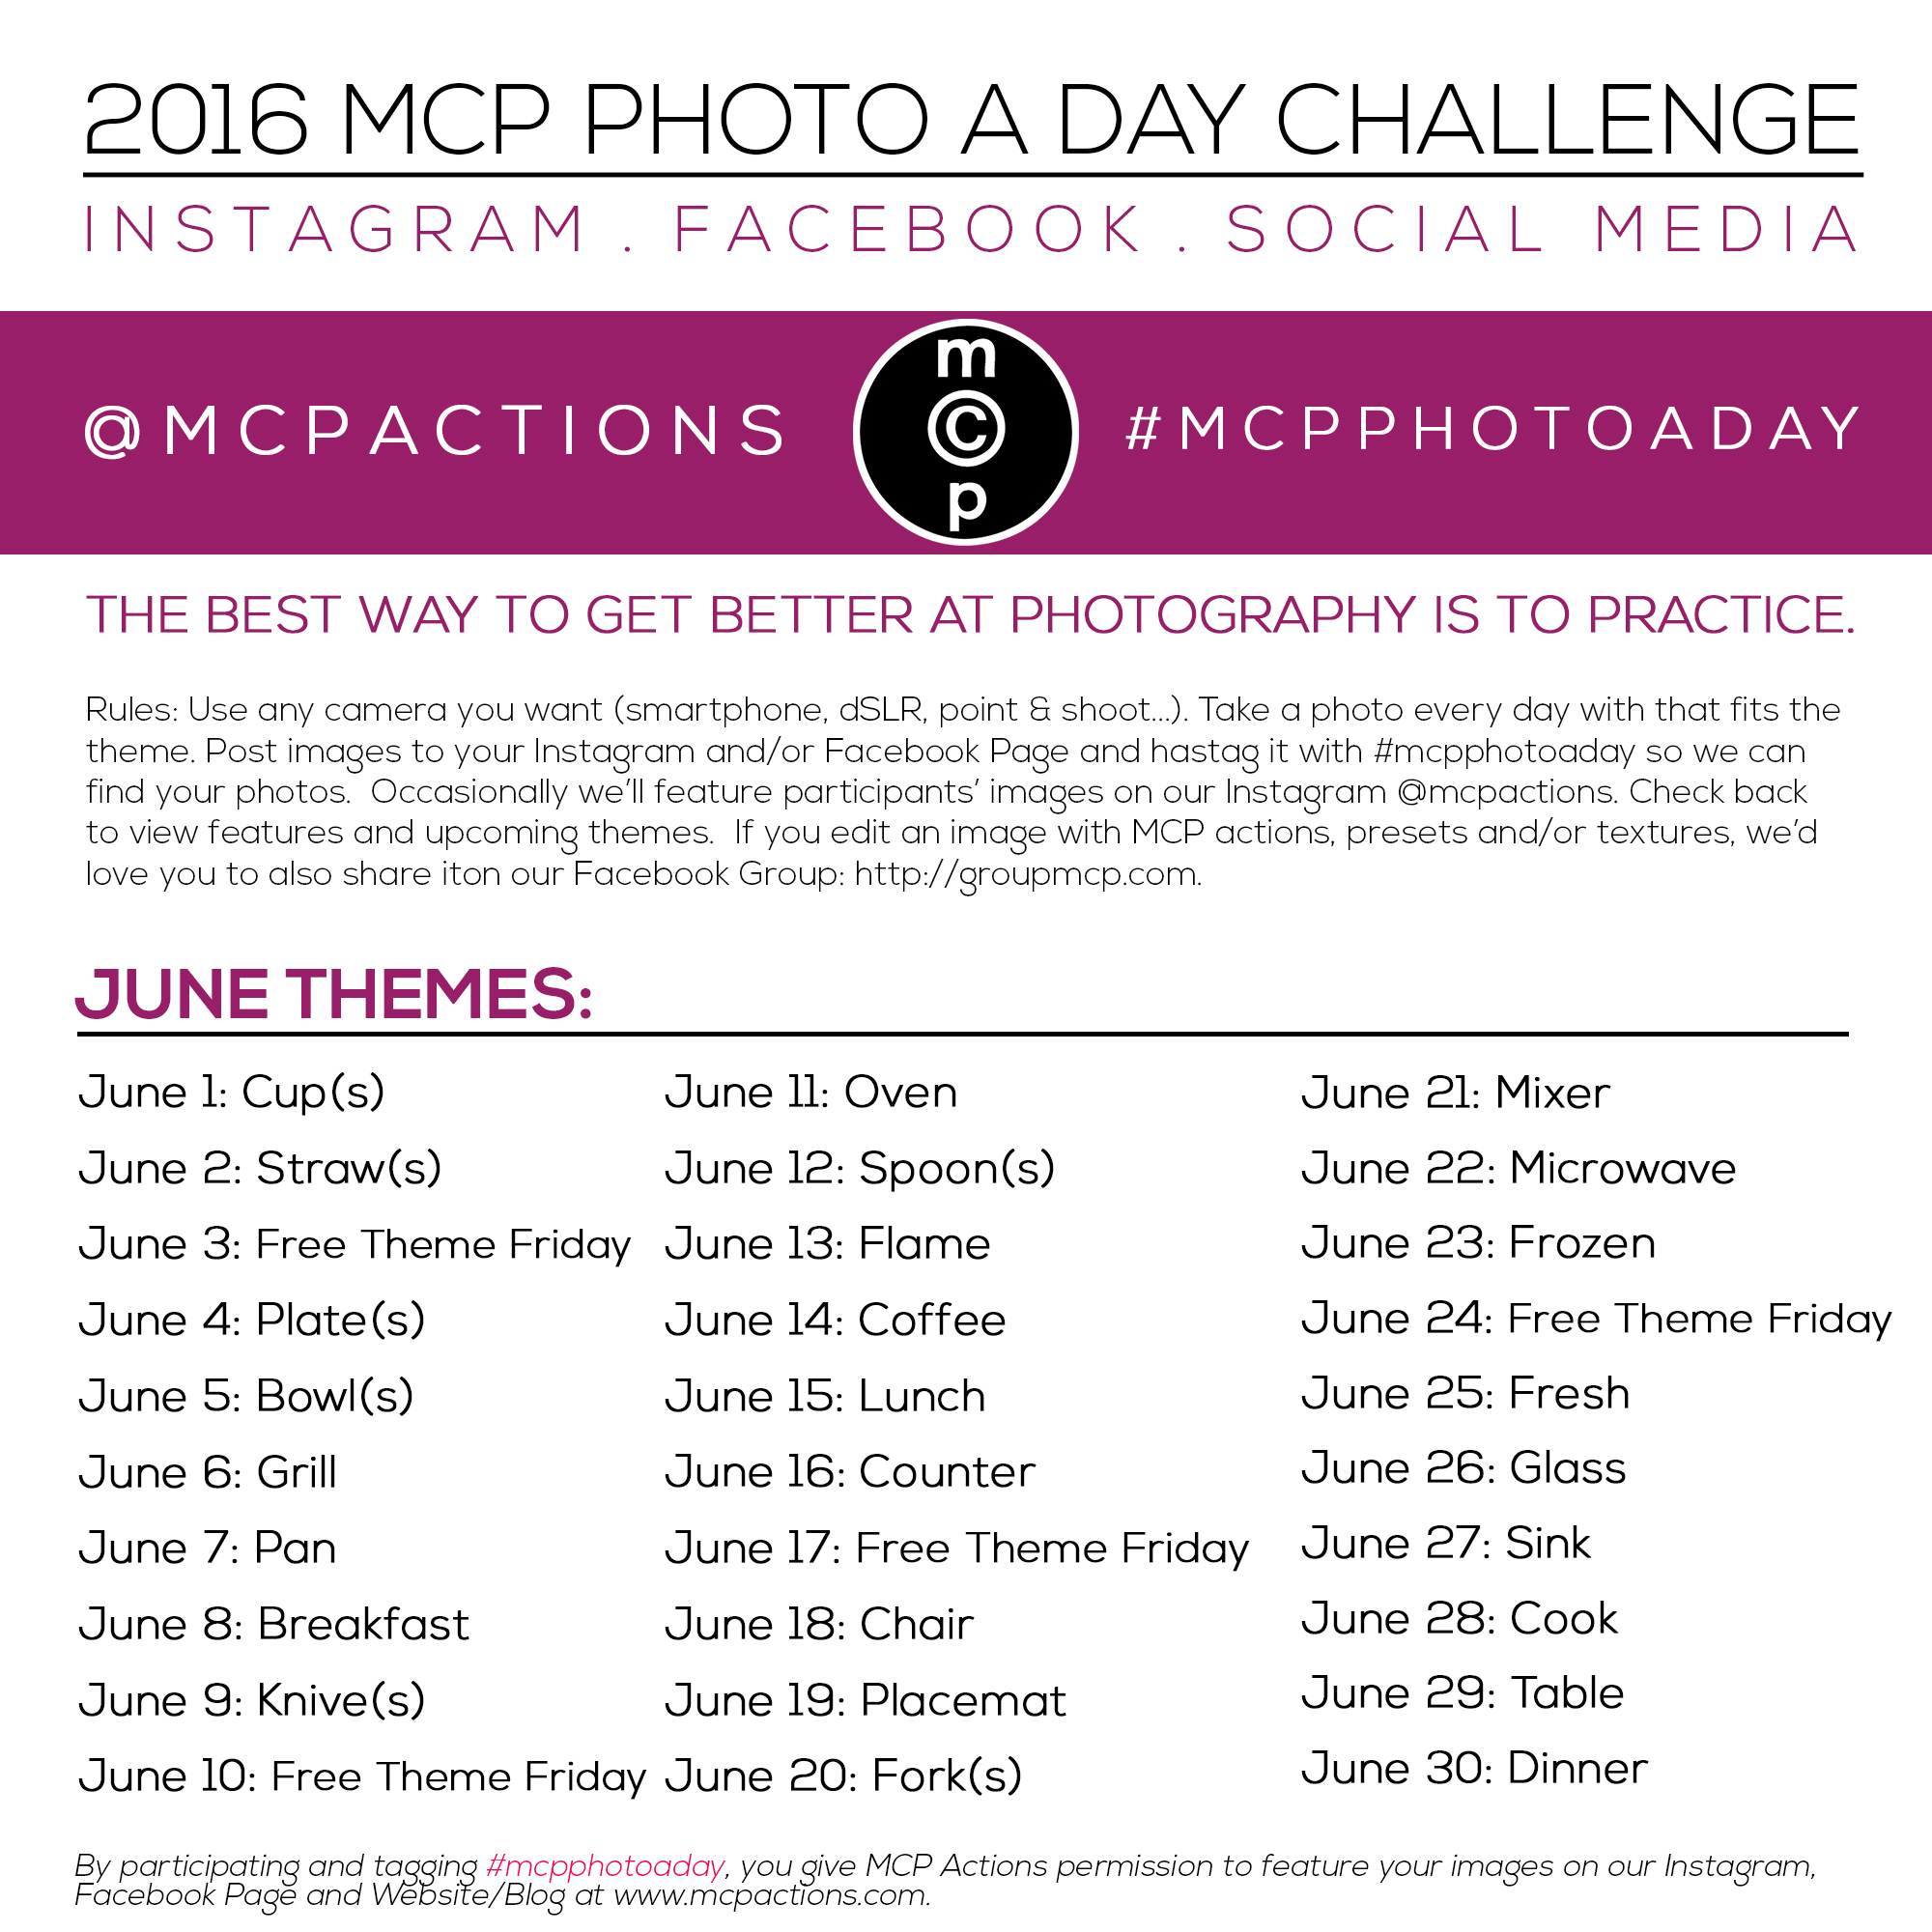 mcpphotoaday-june-2016 MCP Photo A Day Challenge: June 2016 Activities Announcements Assignments